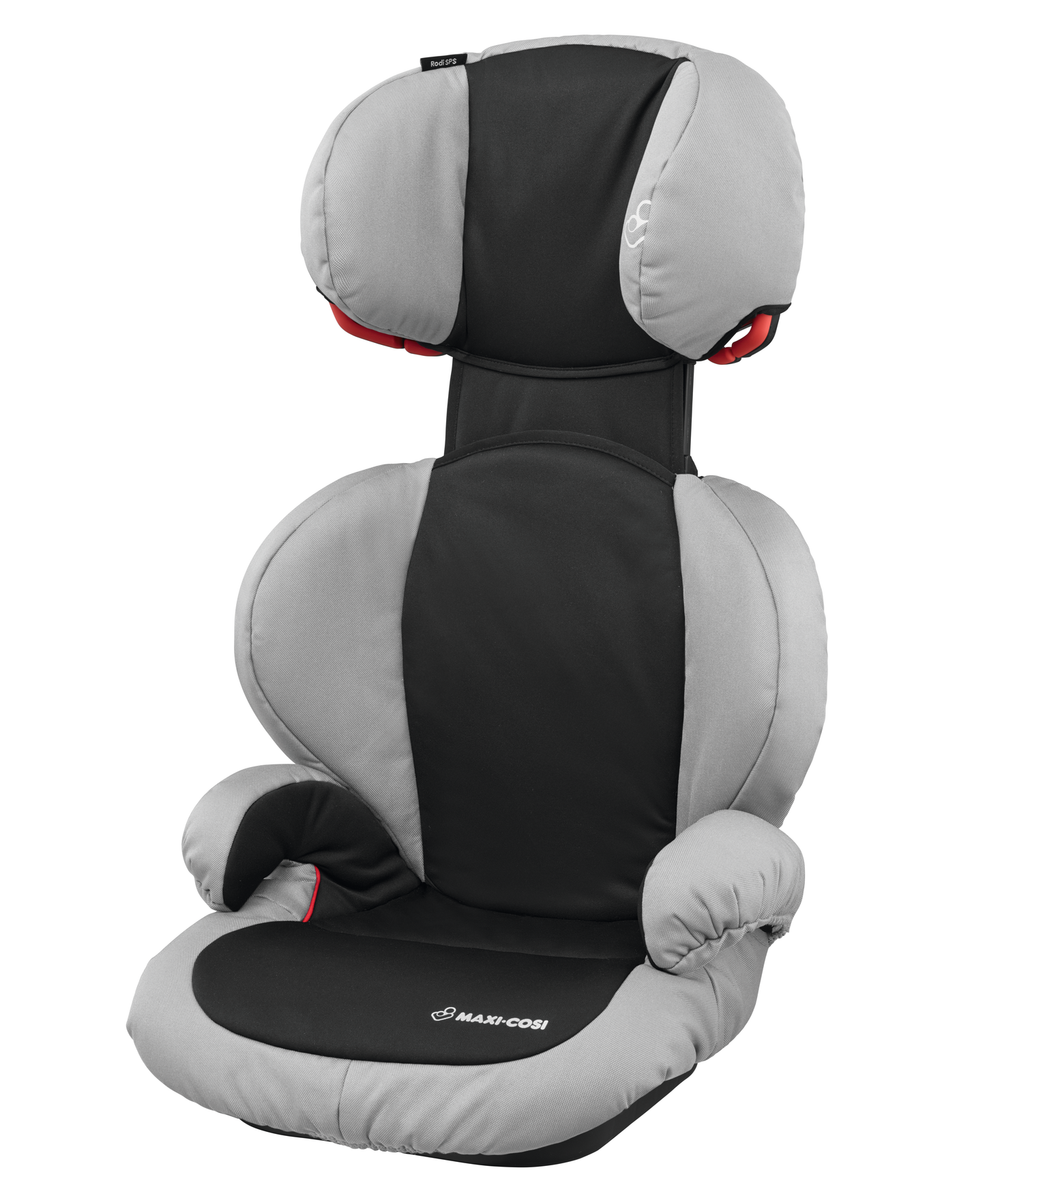 Maxi-Cosi Rodi SPS GROUP 2/3 car seat